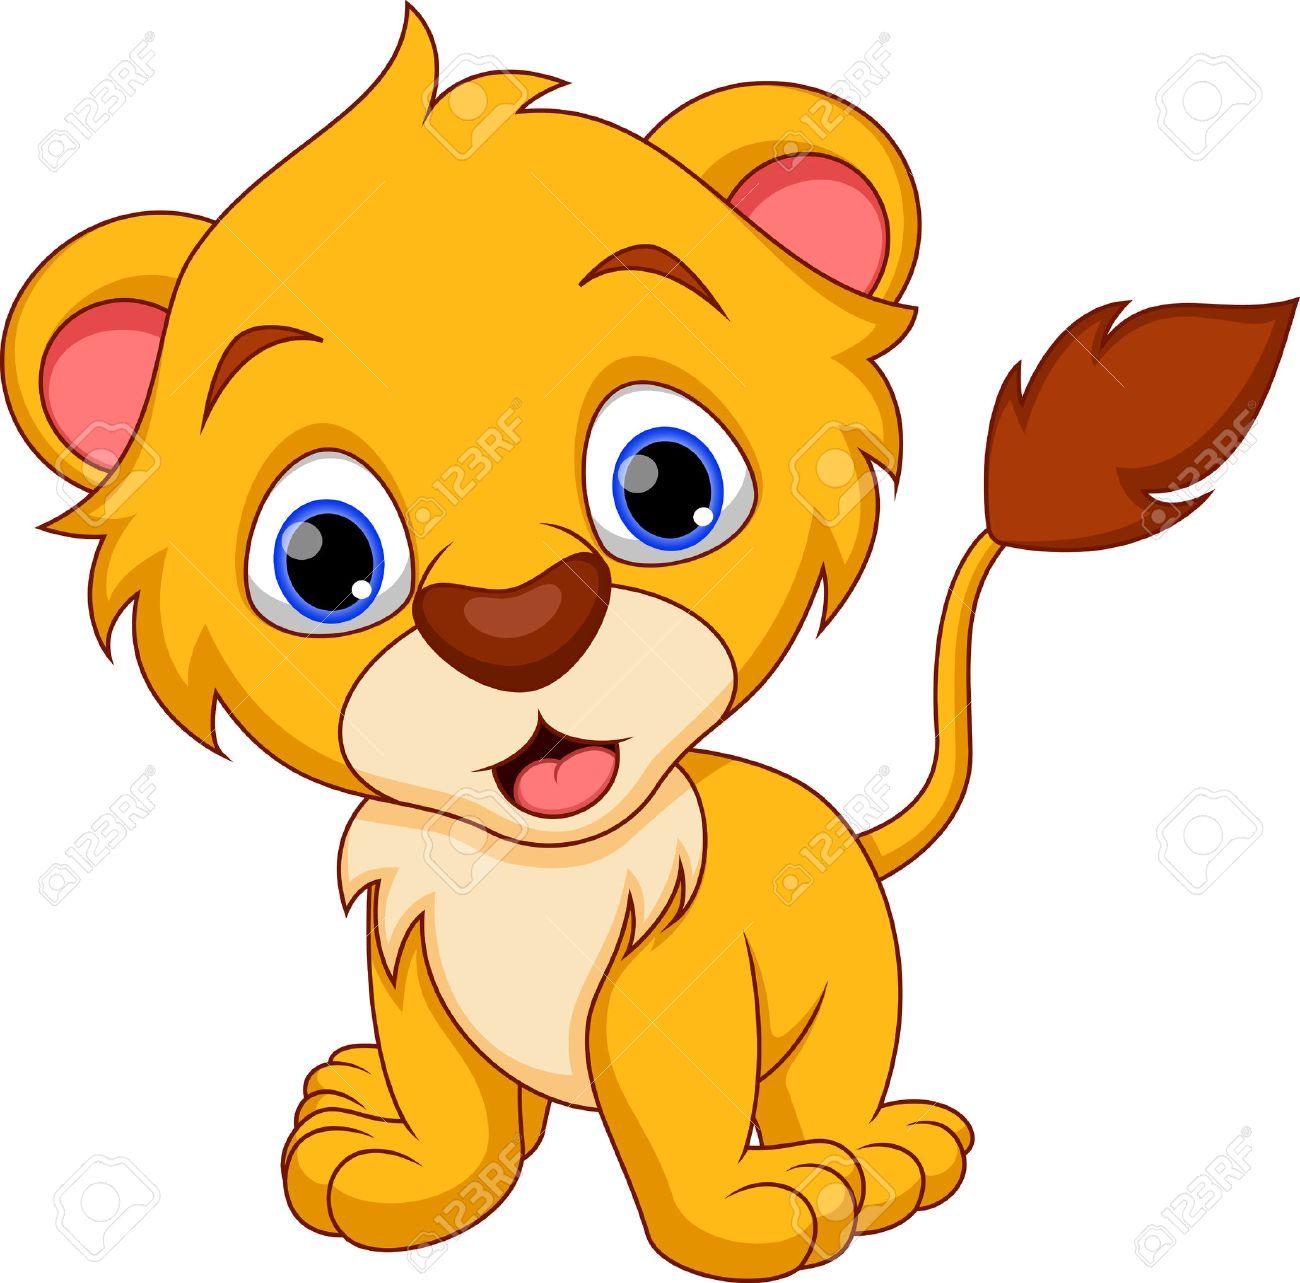 Cute baby lion cartoon royalty free cliparts vectors and stock cute baby lion cartoon stock vector 29315406 voltagebd Image collections